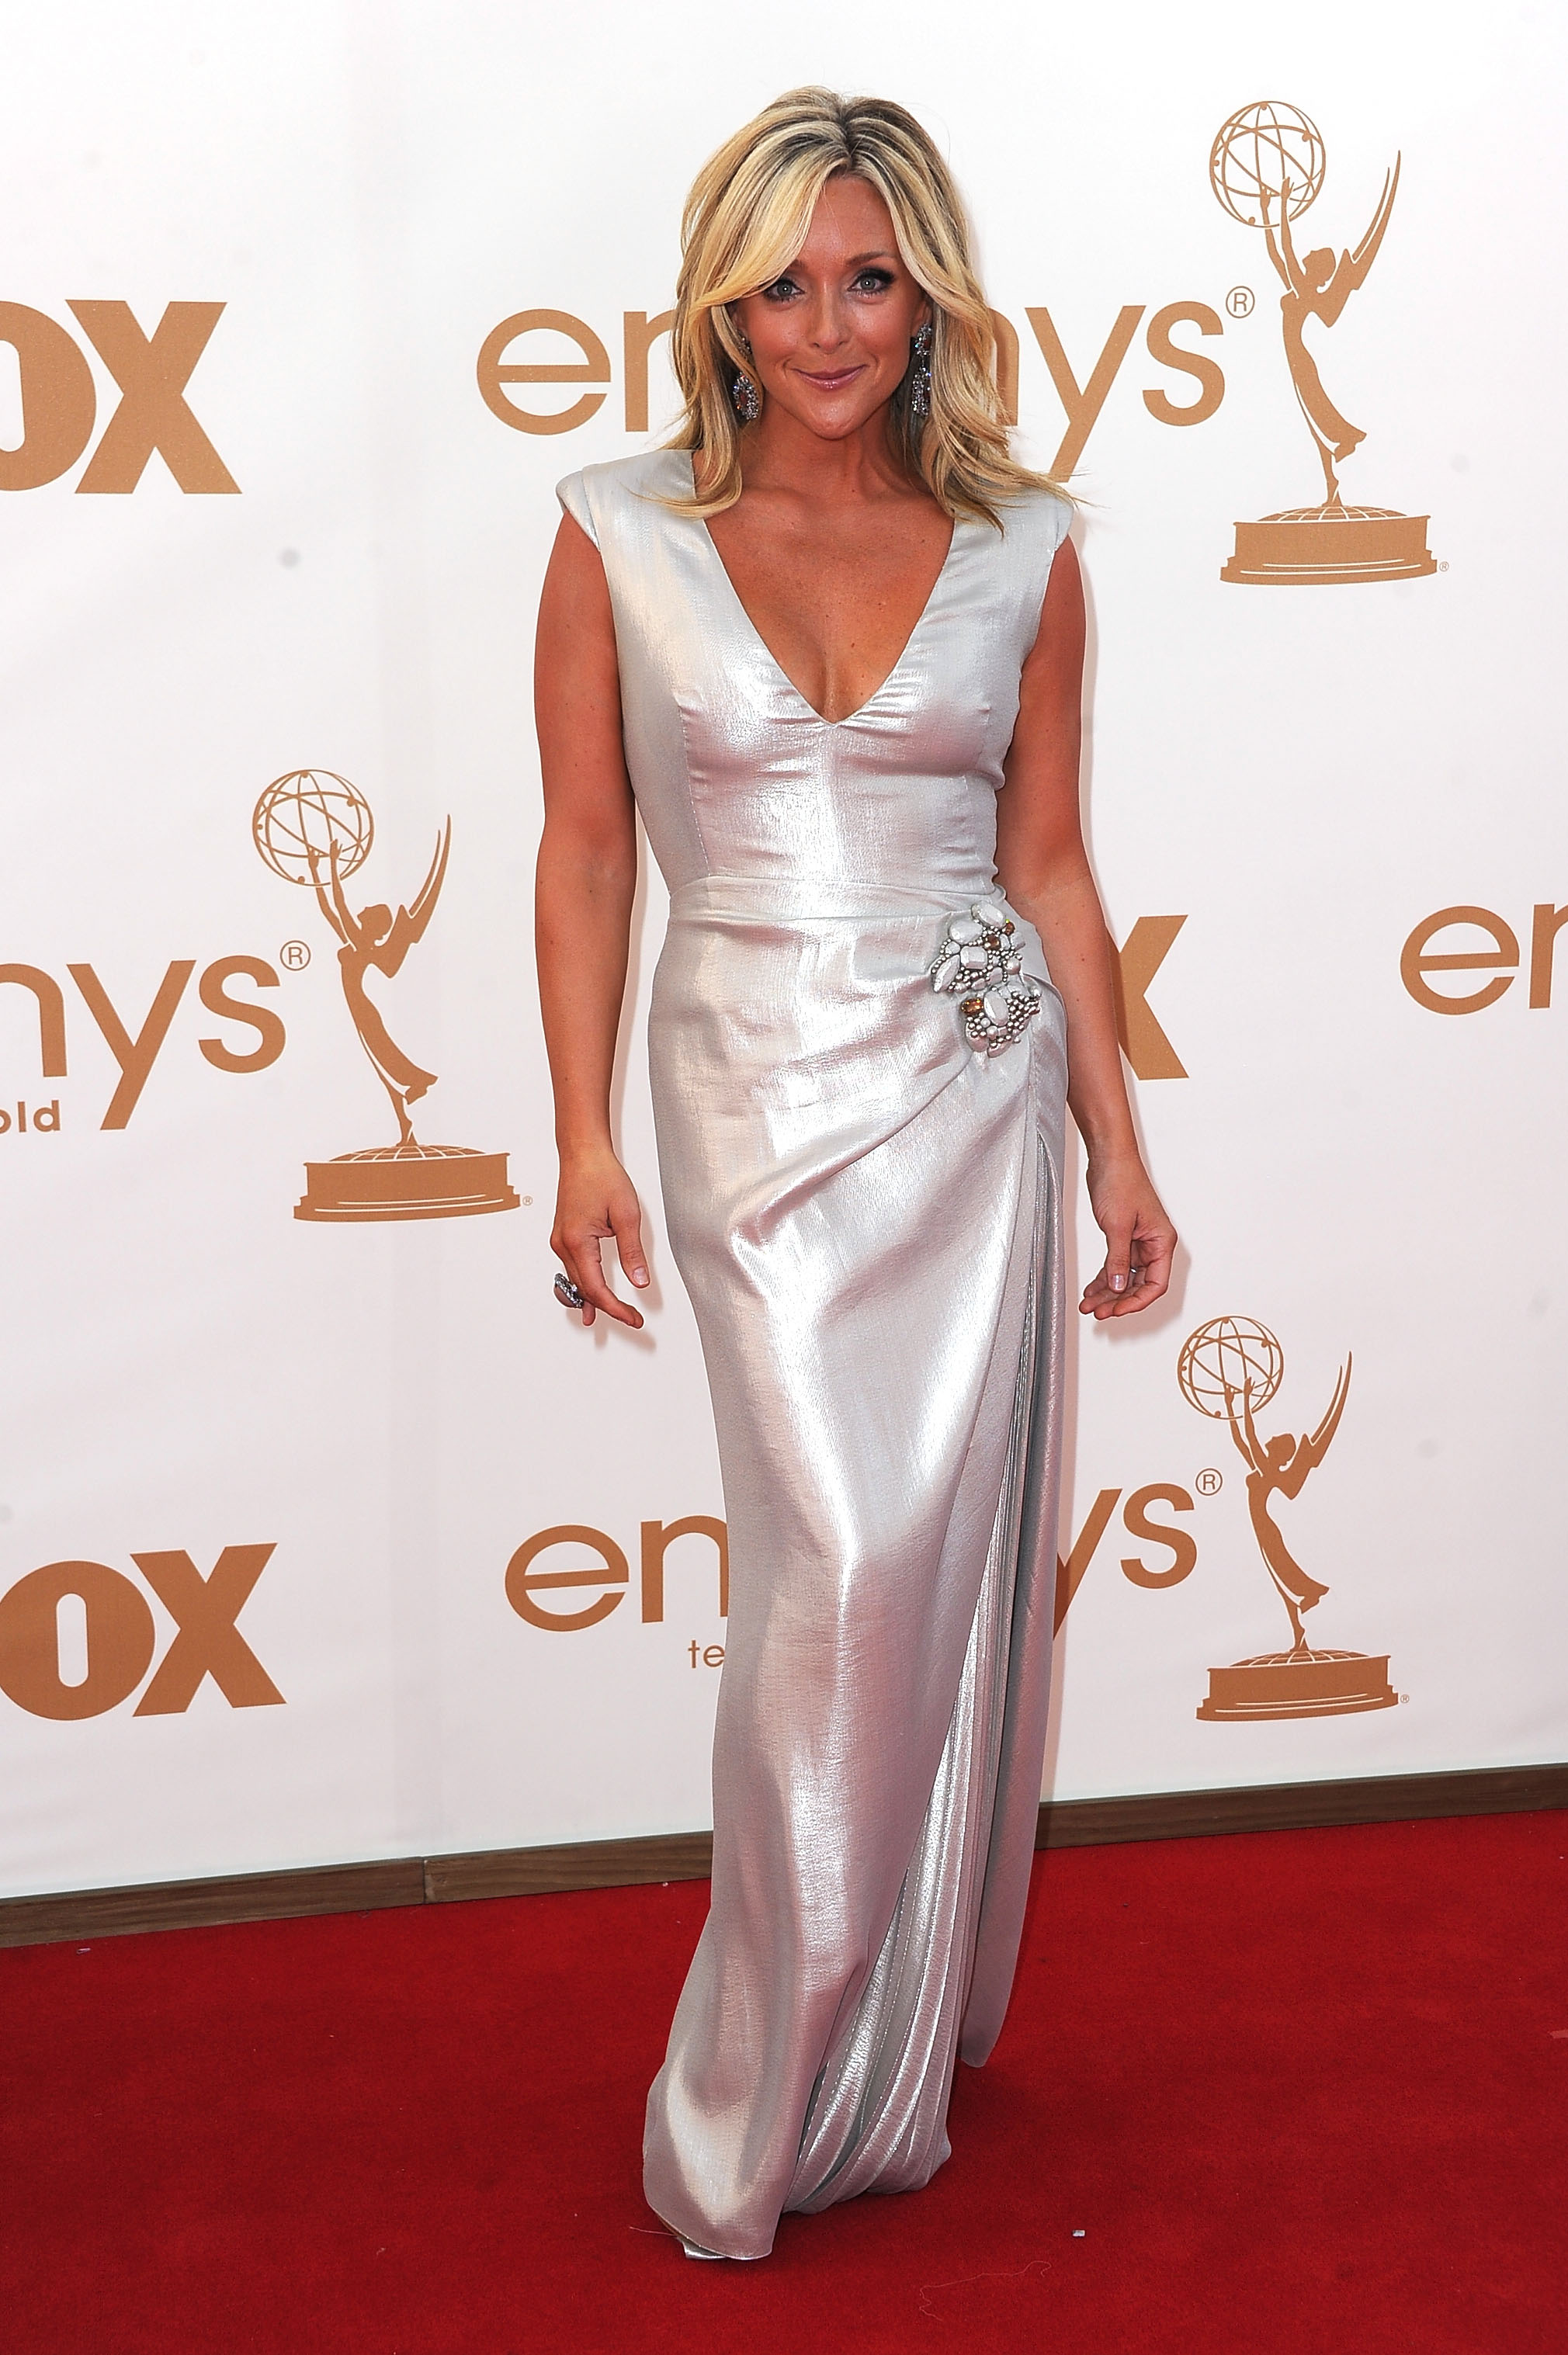 Jane Krakowski at the Emmys.